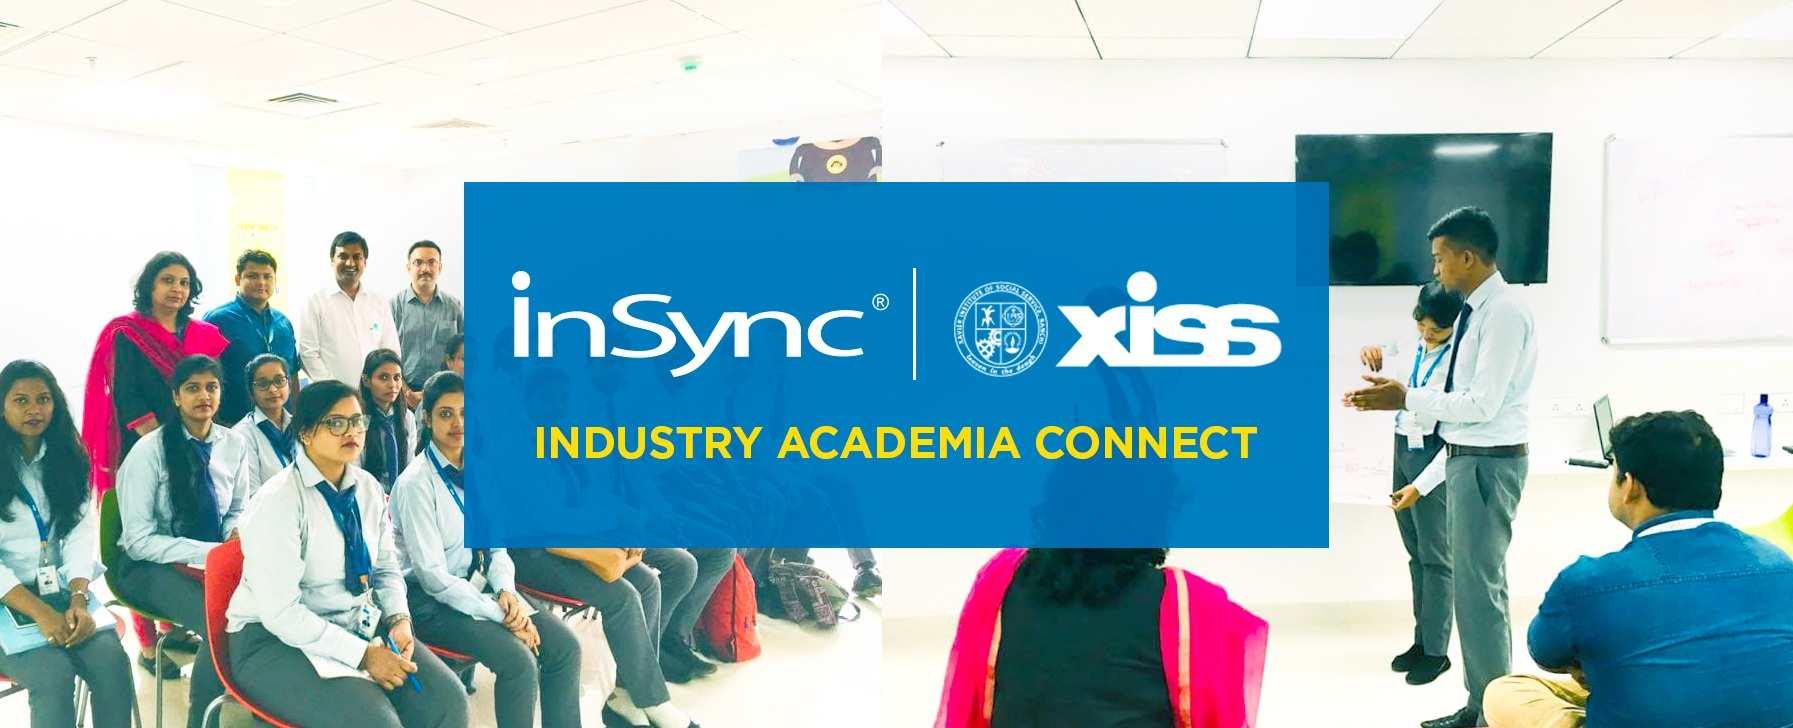 xiss industry academia connect